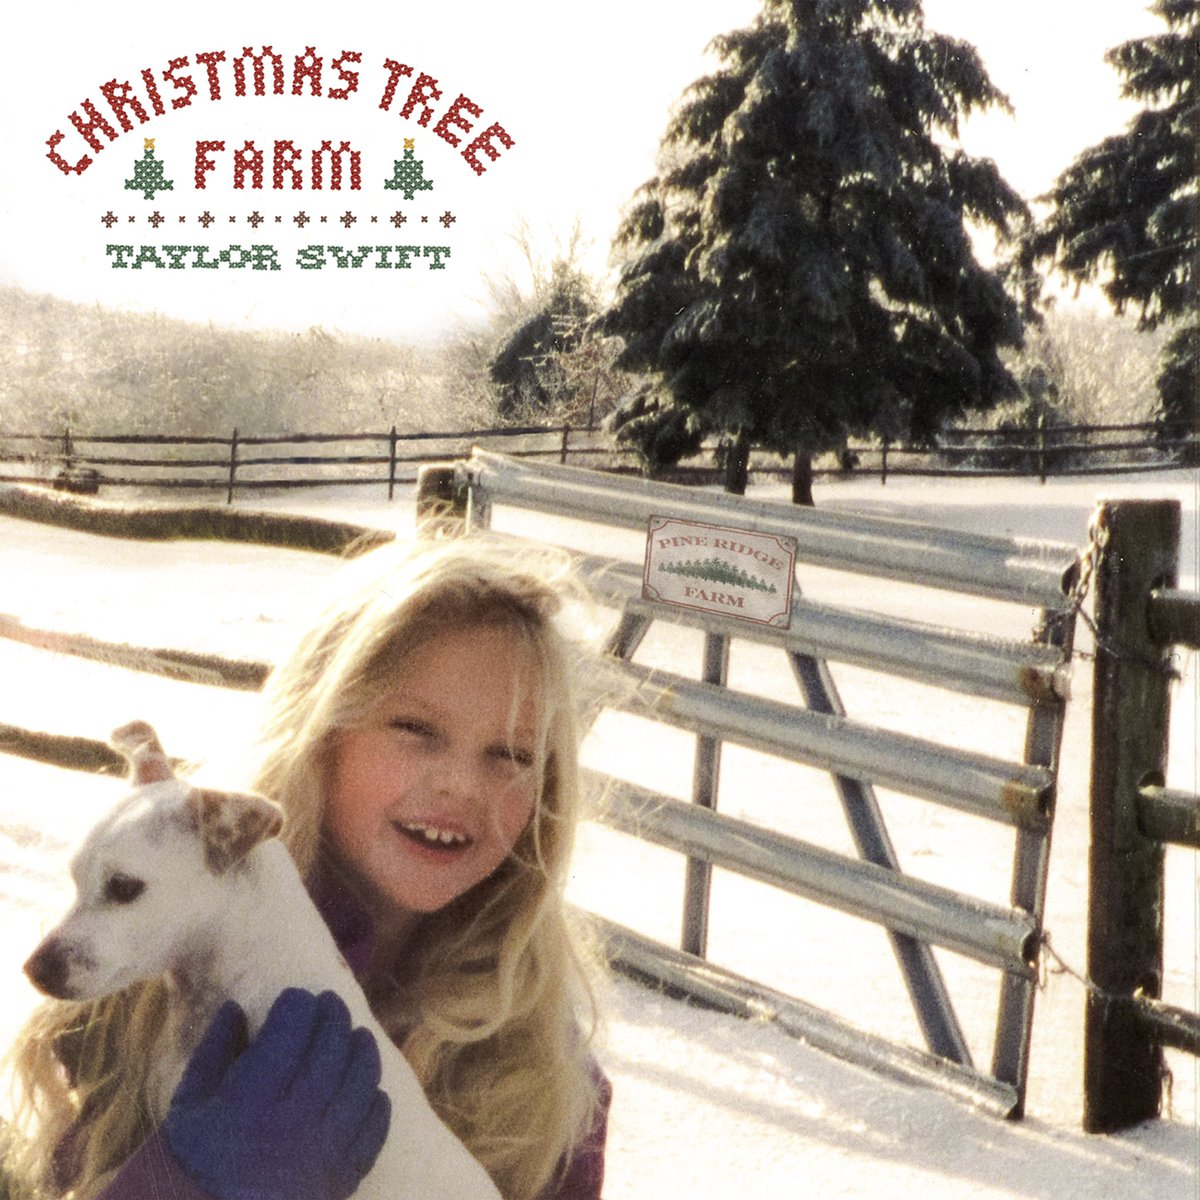 I actually did grow up on a Christmas tree farm. In a gingerbread house, deep within the yummy gummy gumdrop forest. Where, funnily enough, this song is their national anthem. #ChristmasTreeFarm song and video out now 🎄https://t.co/p9Hk8blYpS https://t.co/rTdGd1wIhK